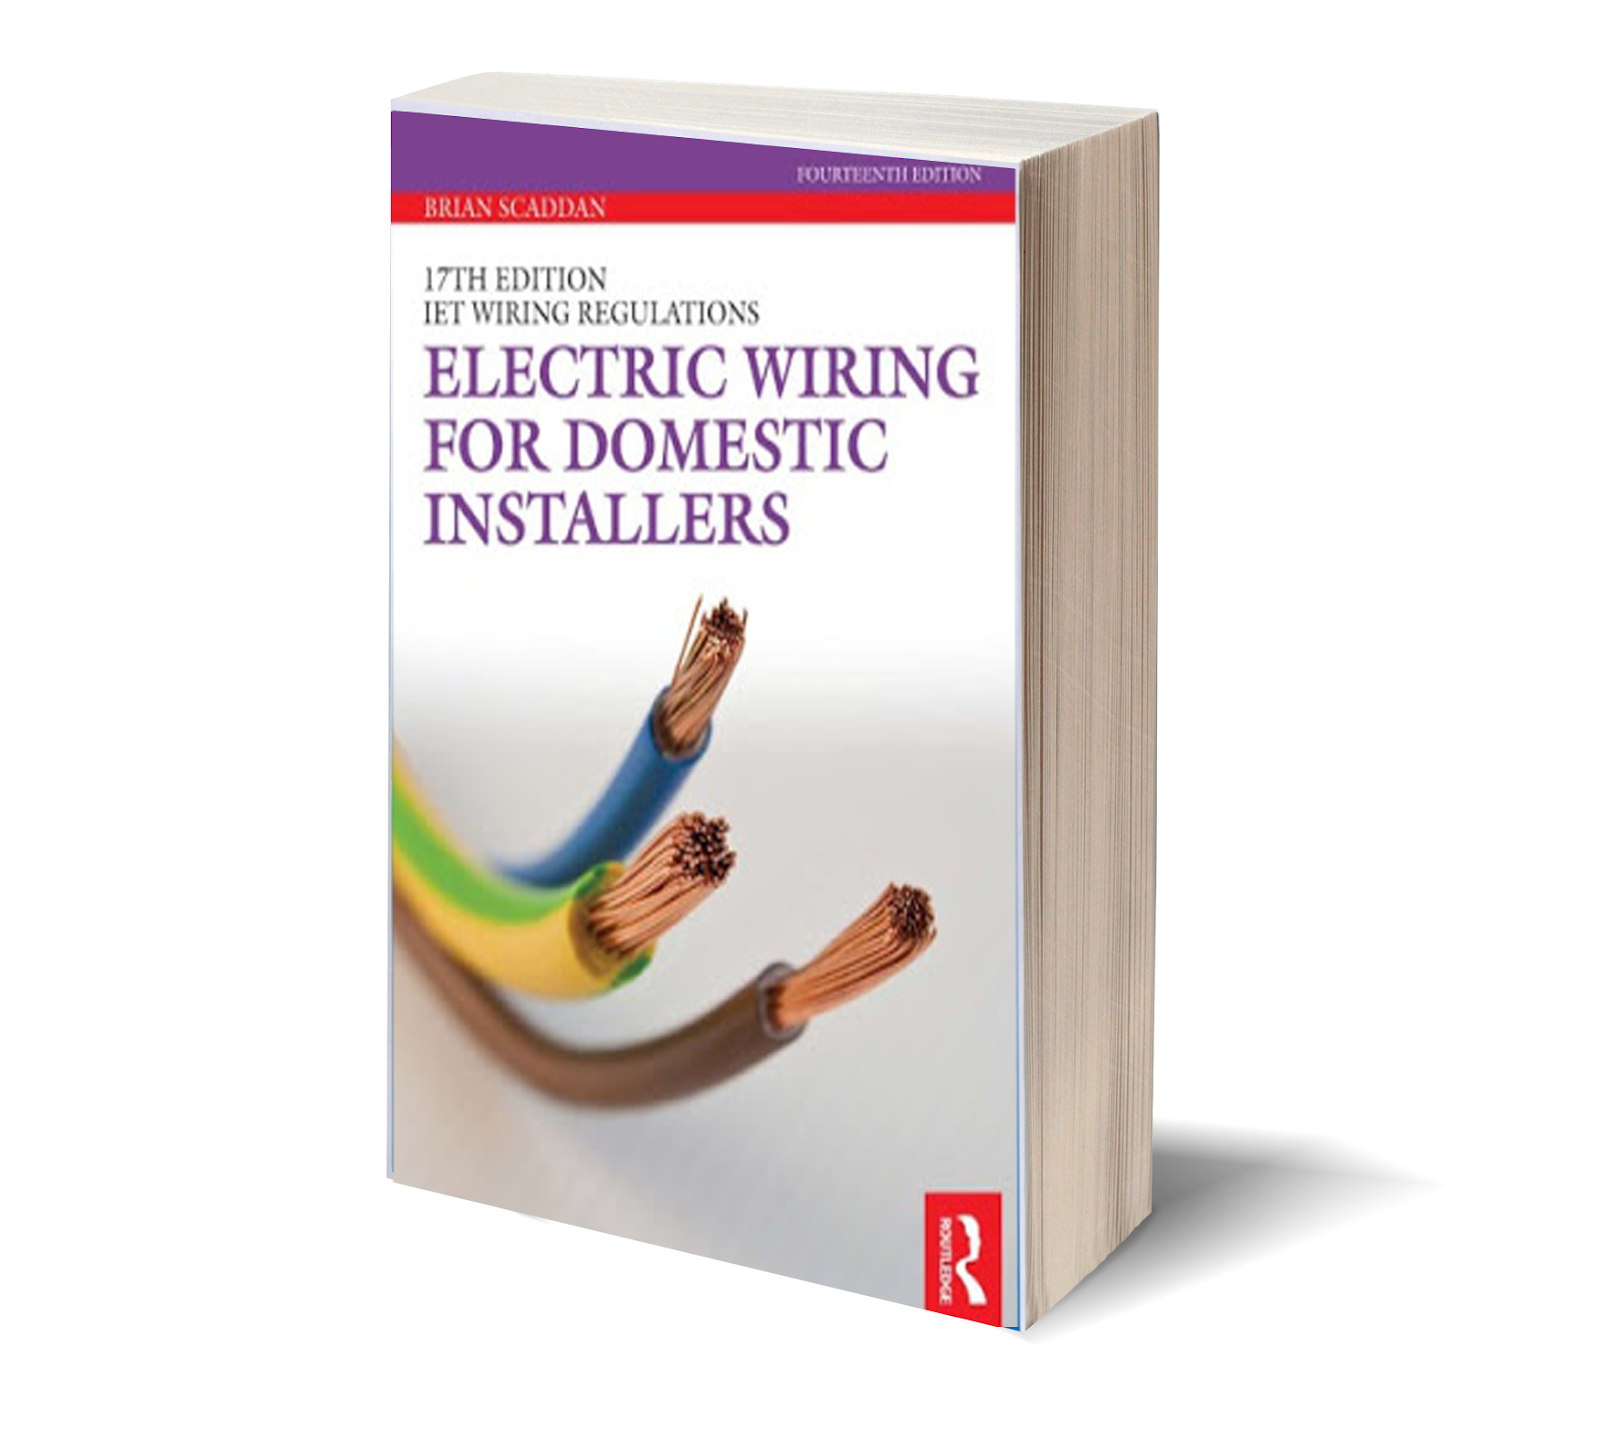 Juillet 2018 Livrebook 17th Edition Wiring Regulations Book Free Download Electric For Domestic Installers Pdf Books